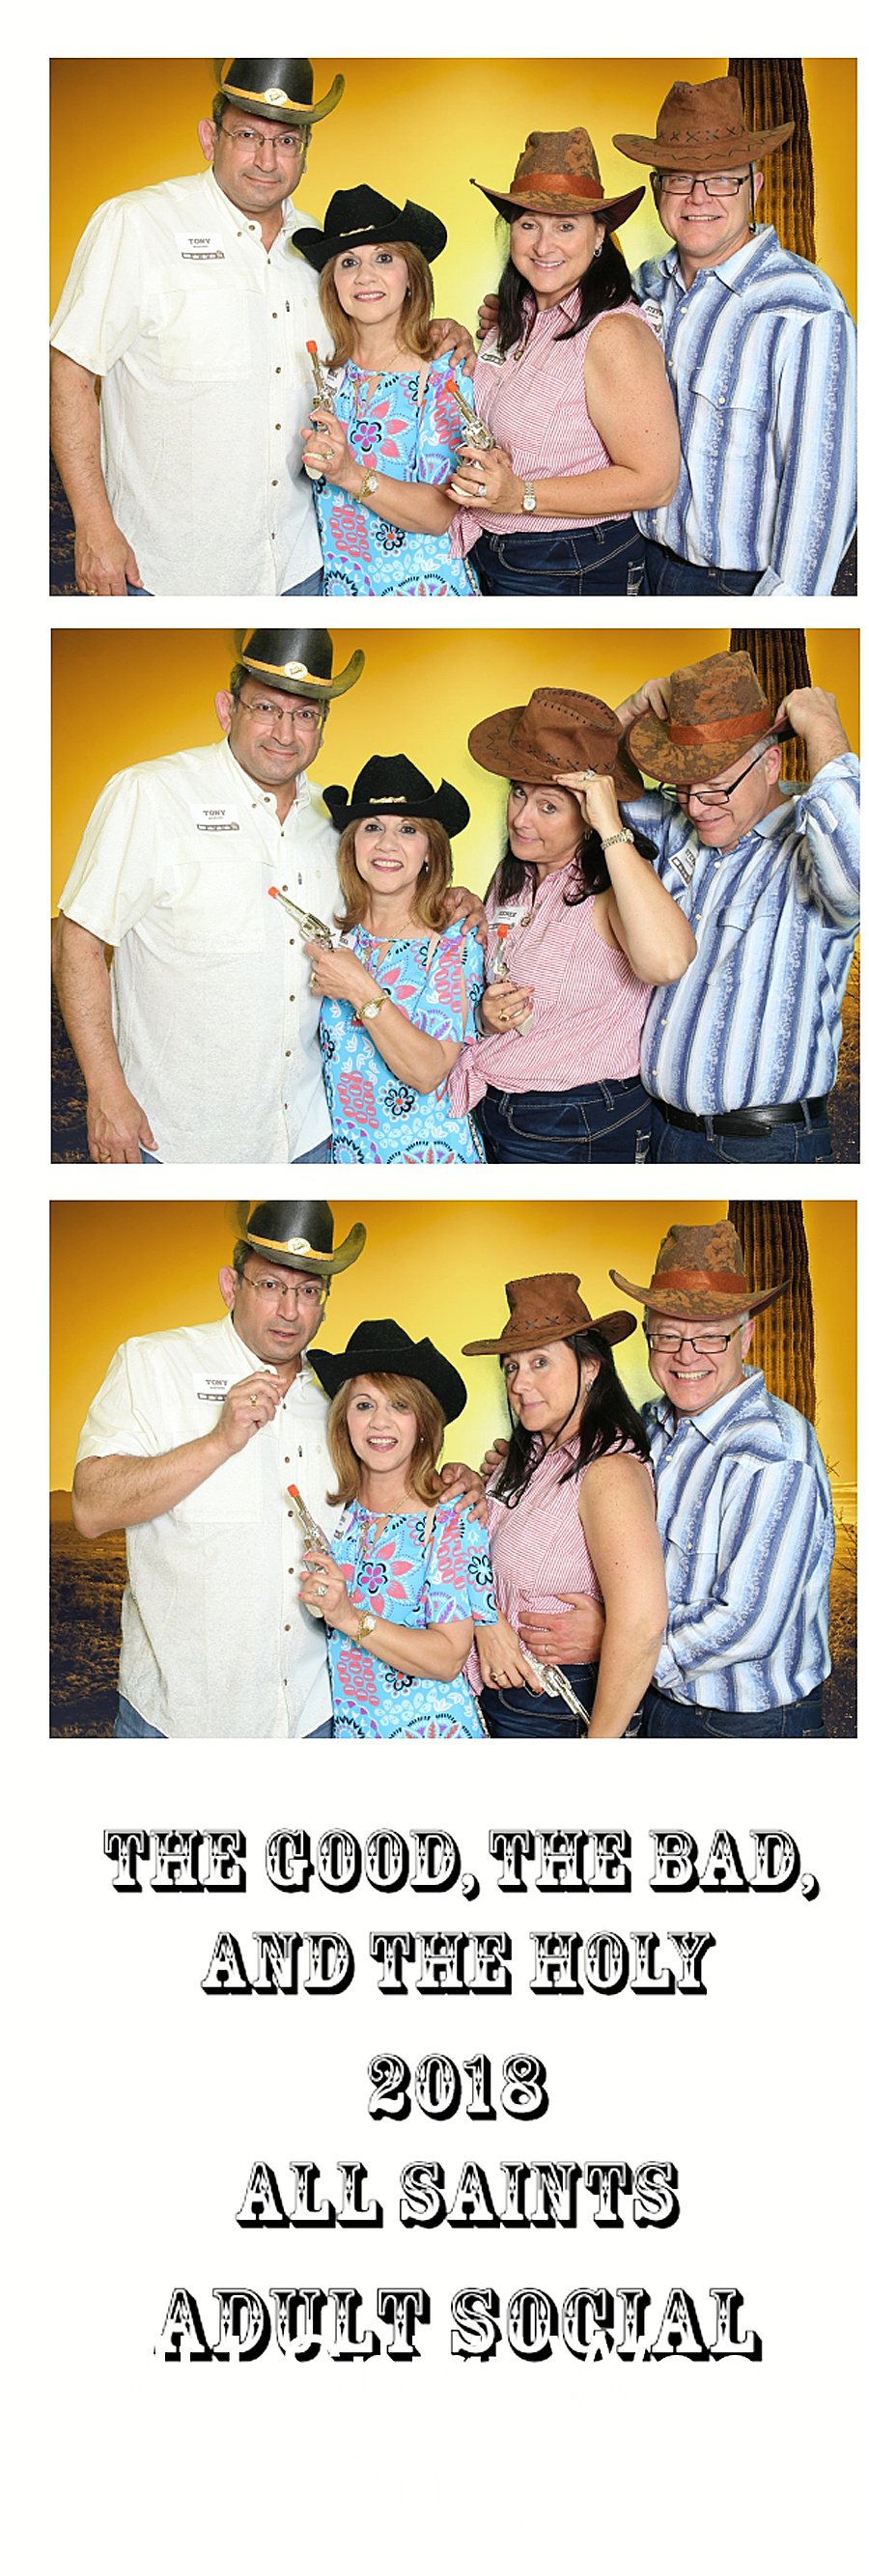 Knoxville Photo Booth_1330.jpg